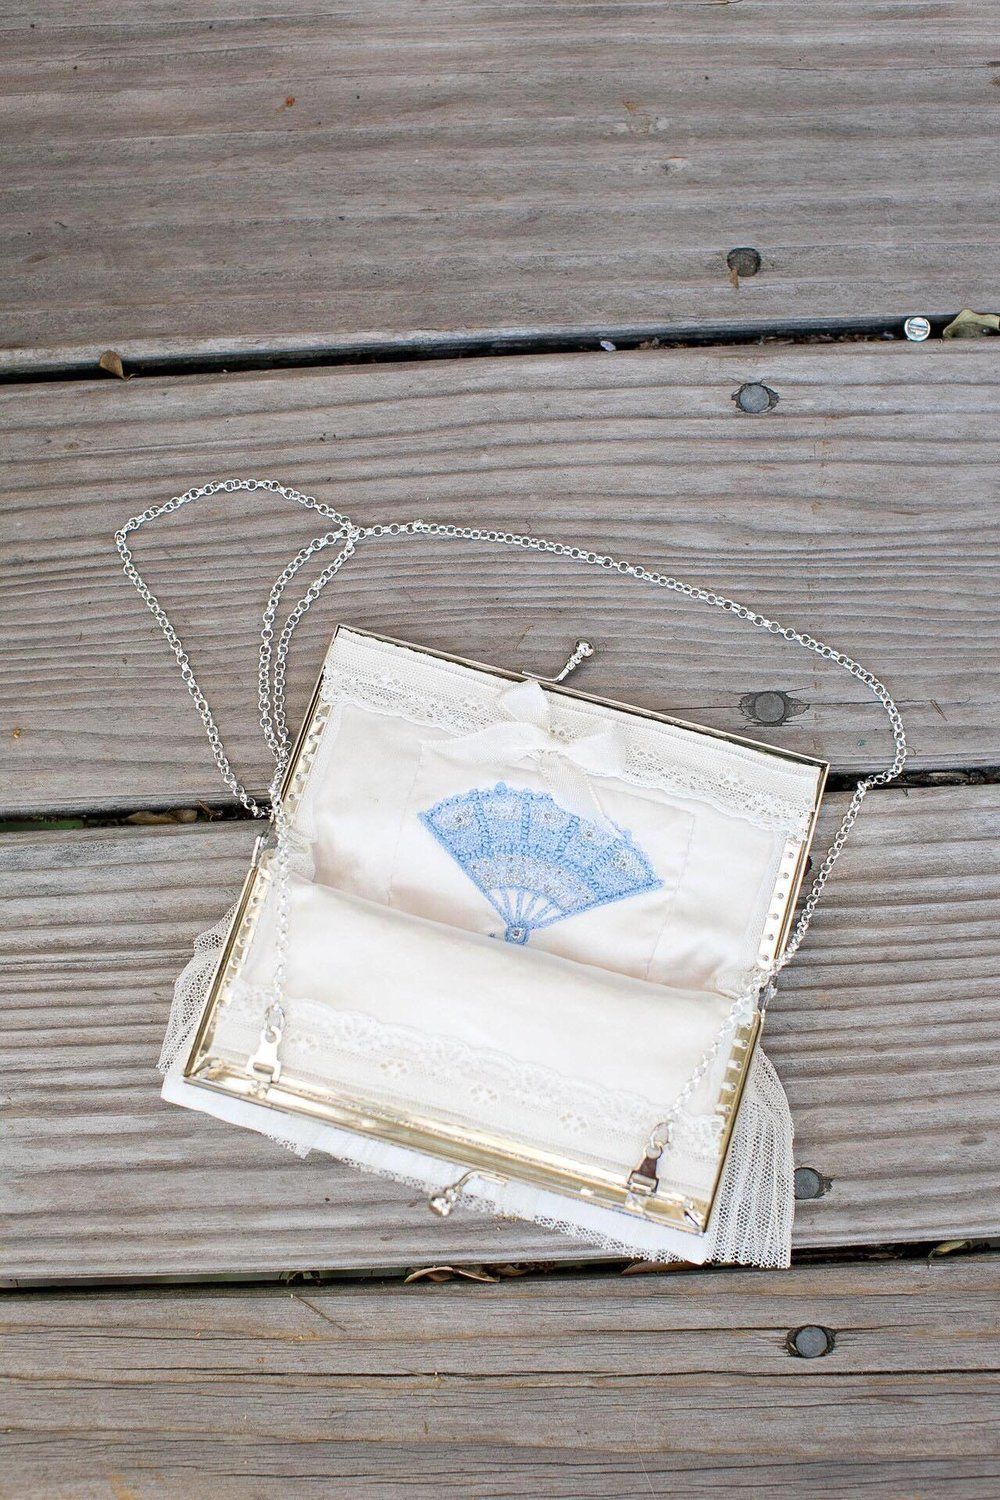 Something old .... the lace.  Something new .... the bag itself.  Something borrow ... the gorgeous handkerchief that went into it.  Something borrowed ... the blue fan design.